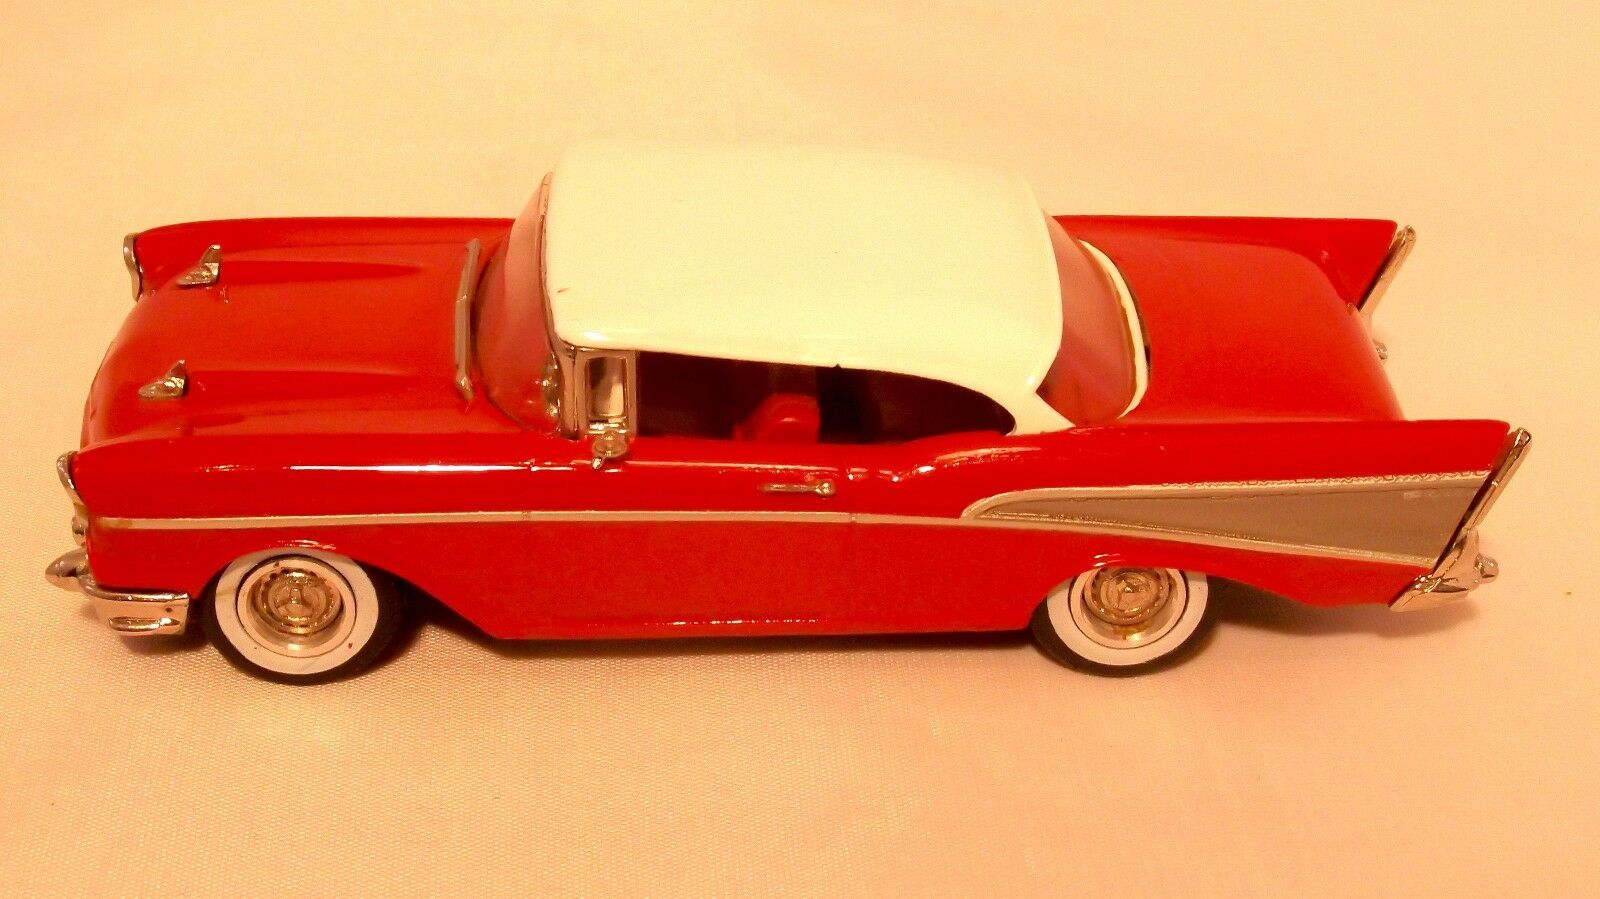 1957 1957 1957 Chevrolet Bel Air Congreenible - Rare Western Models 1 43 - 1 43 Scale WMS44 77fe8e